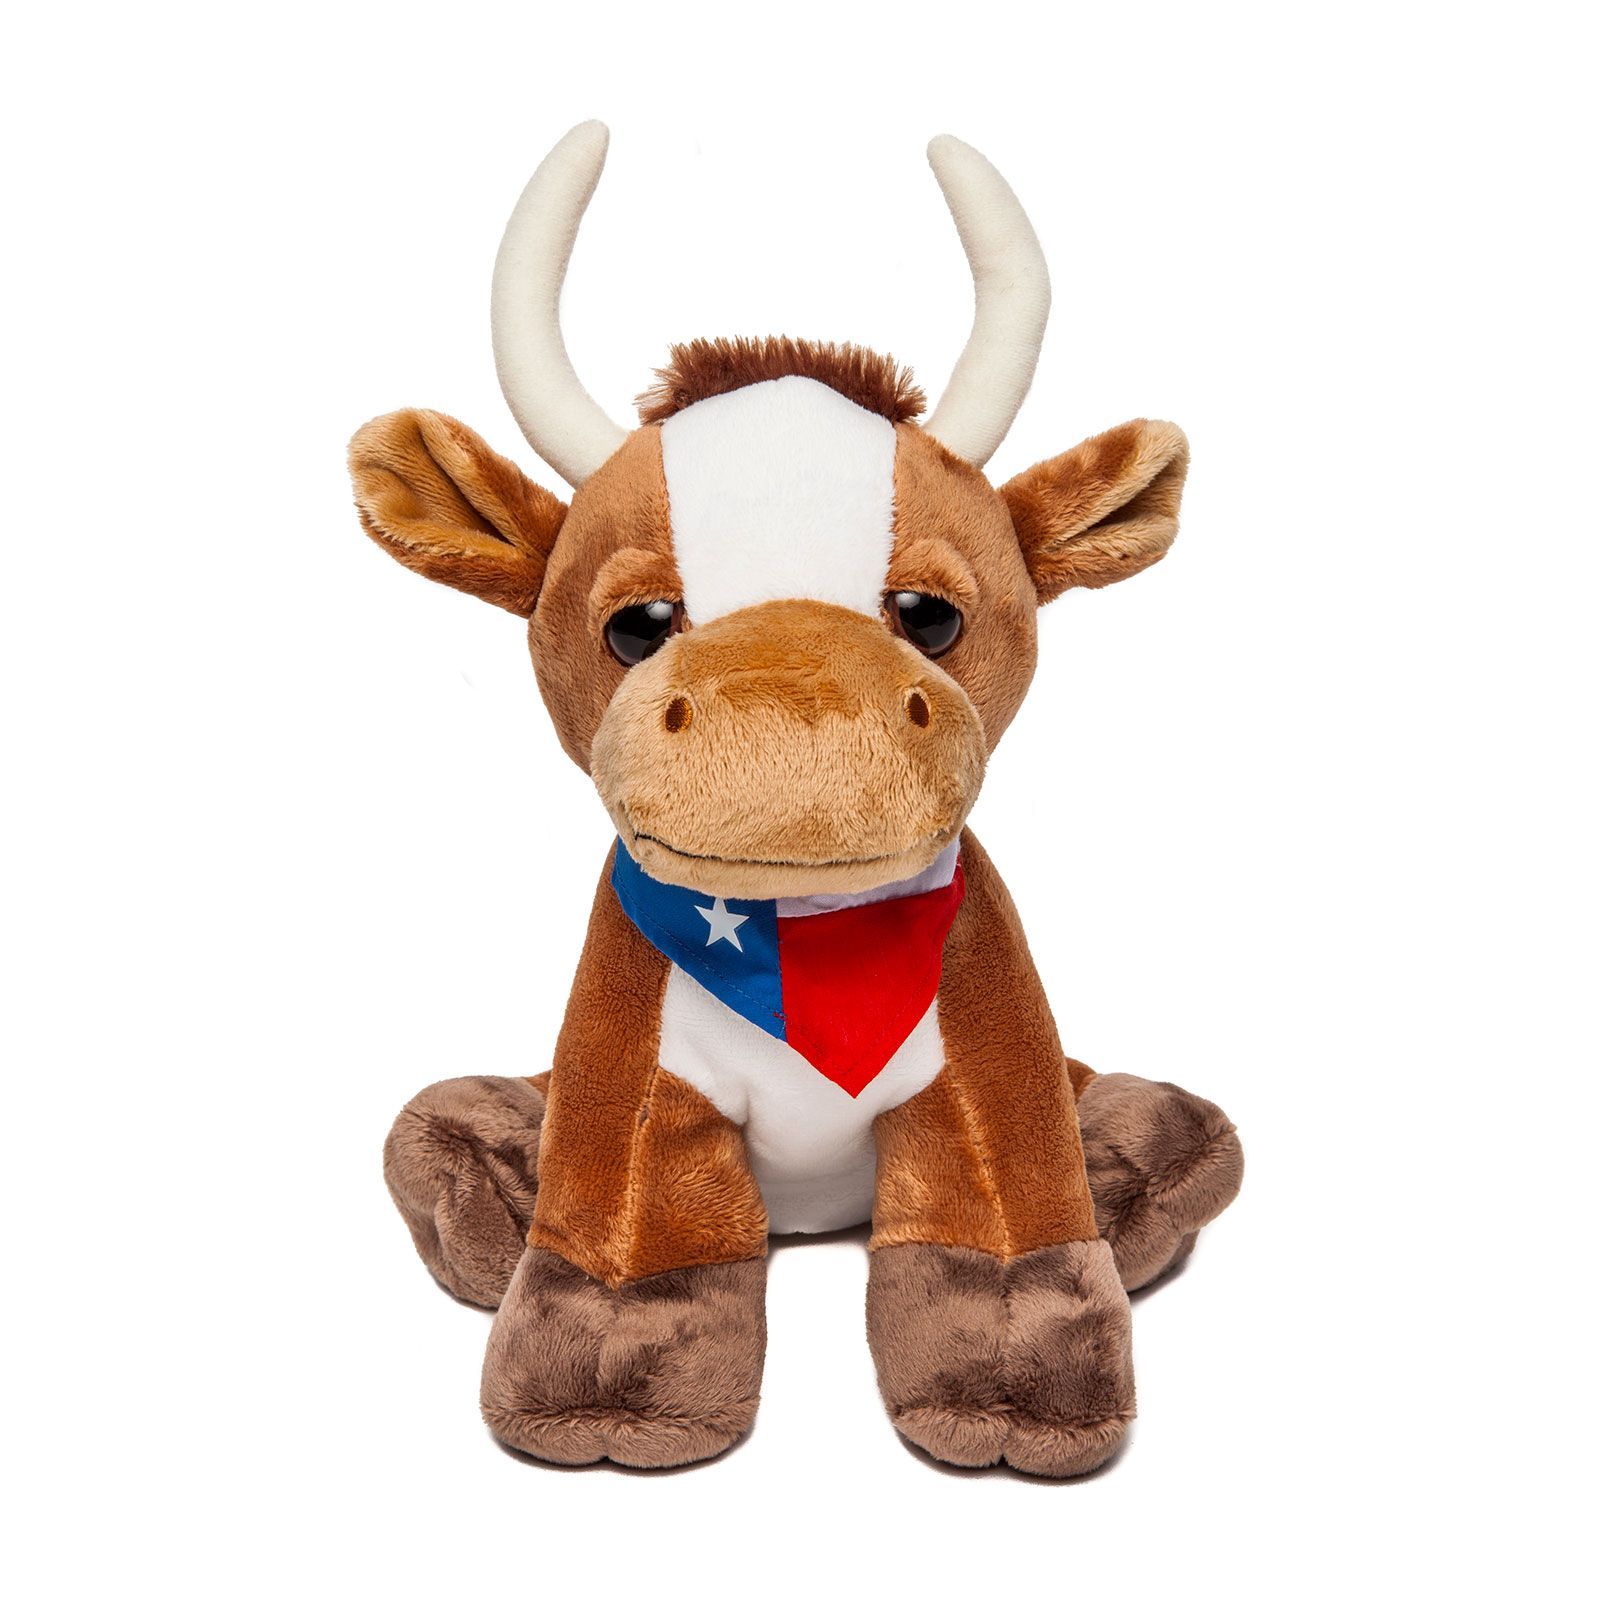 Longhorn with Texas State Flag Bandana Plush Toy